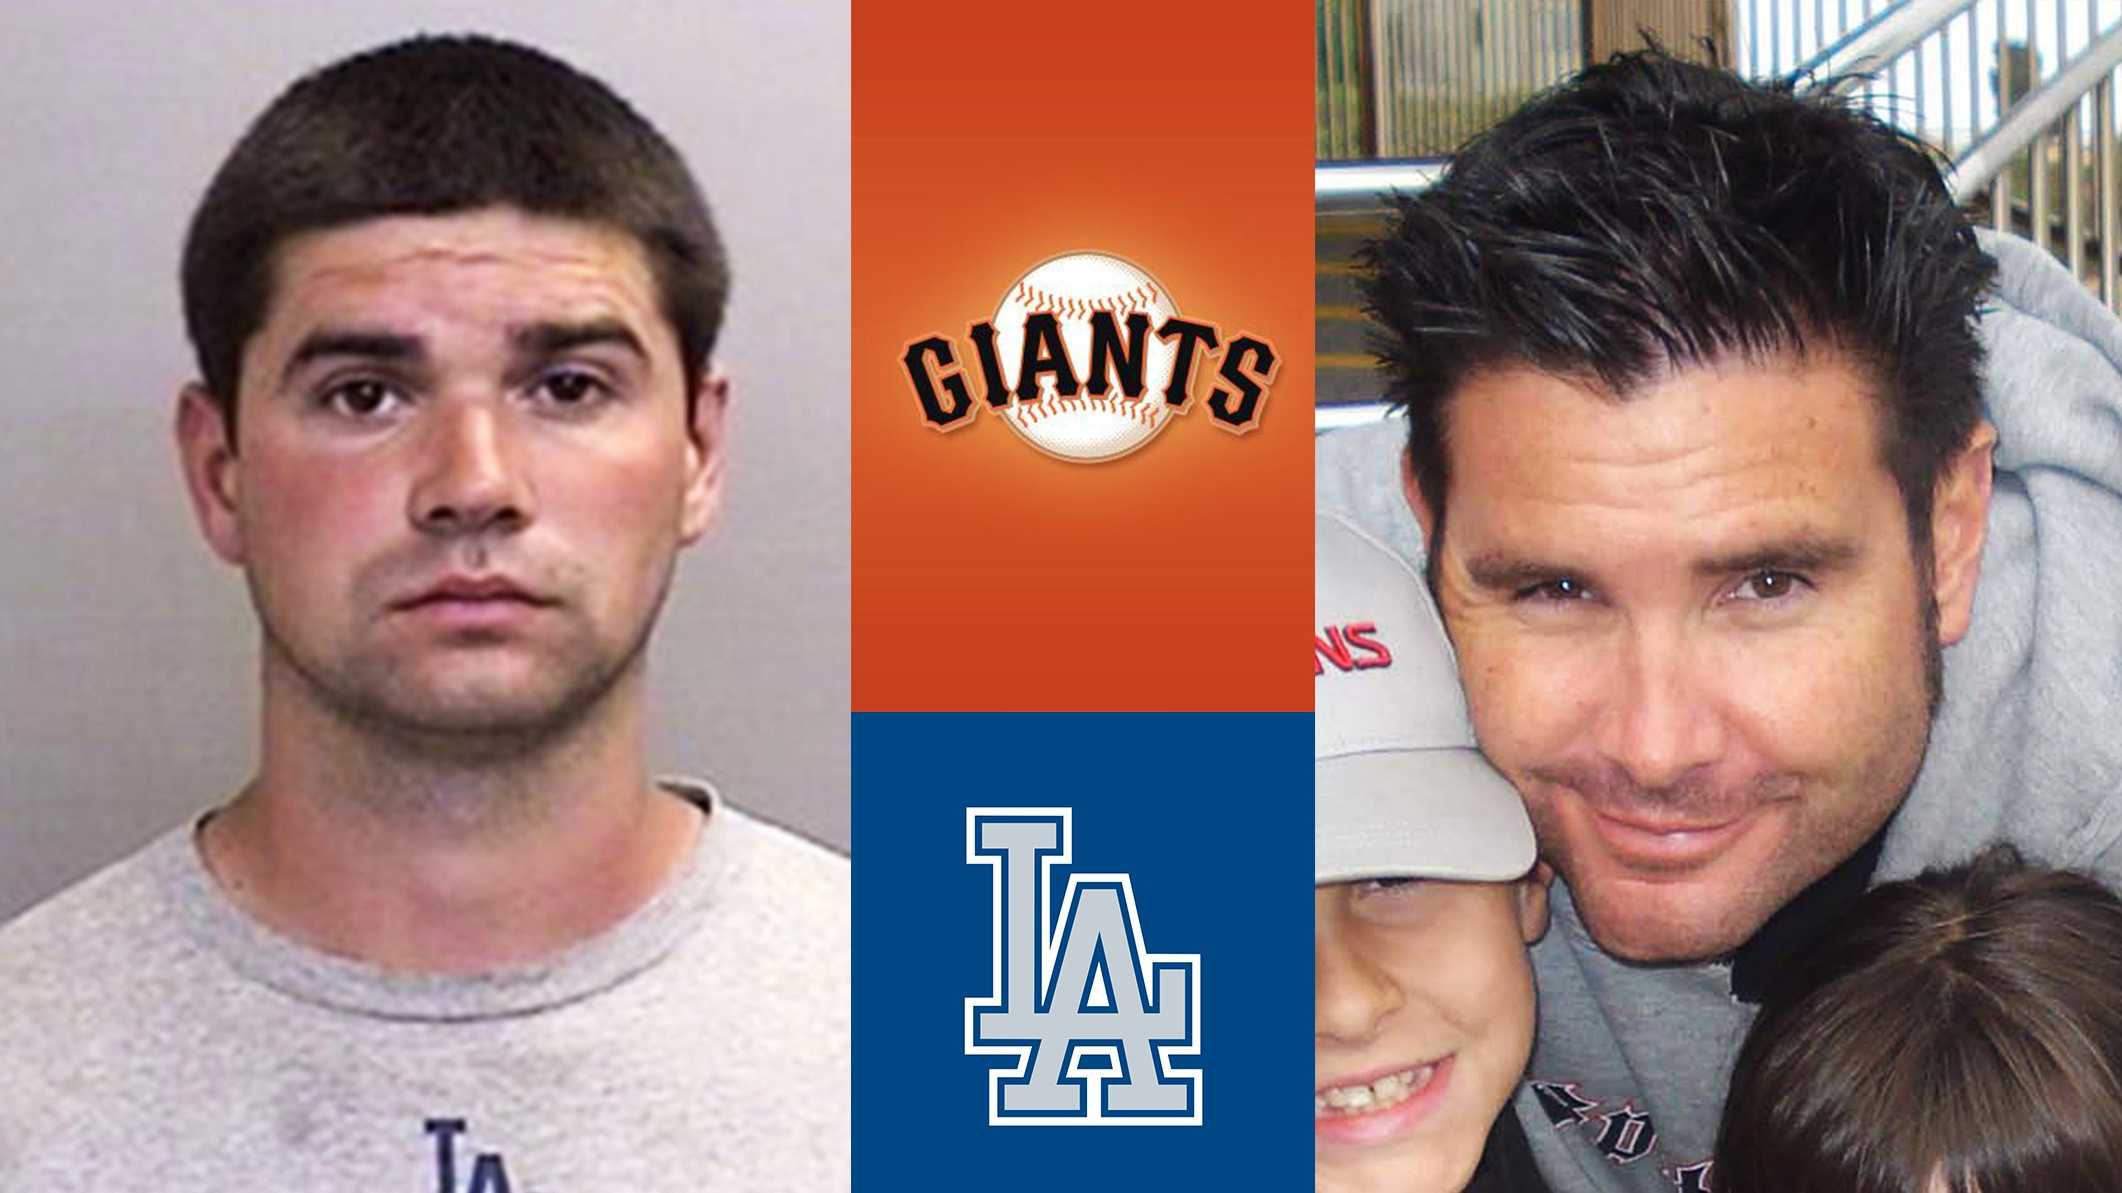 Dodgers fan Jonathan Denver, left, and Giants fan Bryan Stow, right